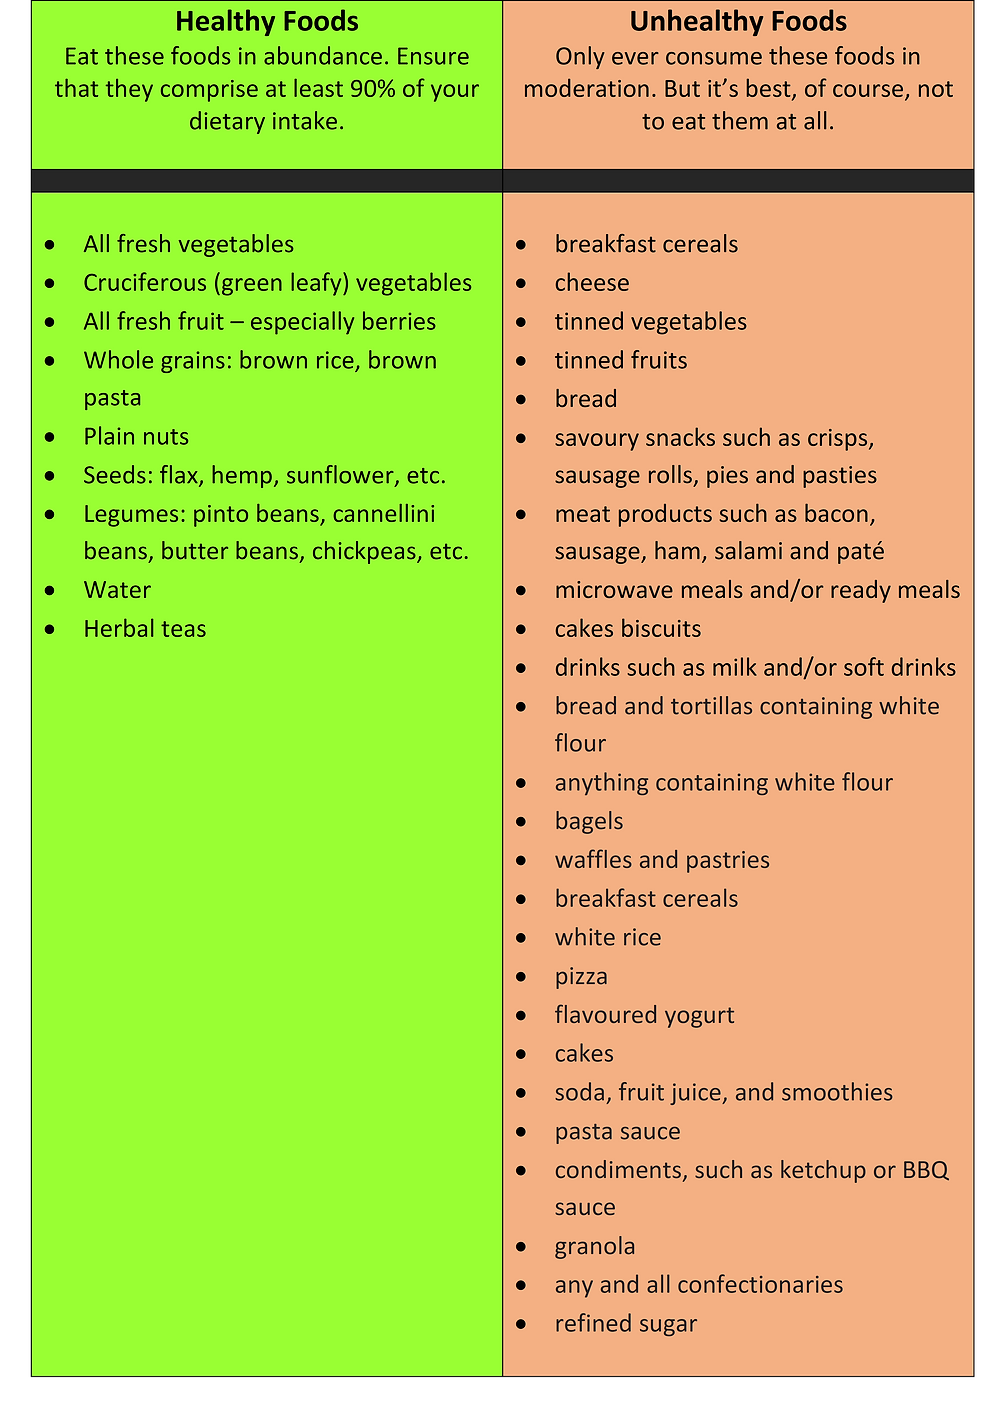 a table displaying a list of healthy foods and unhealthy foods